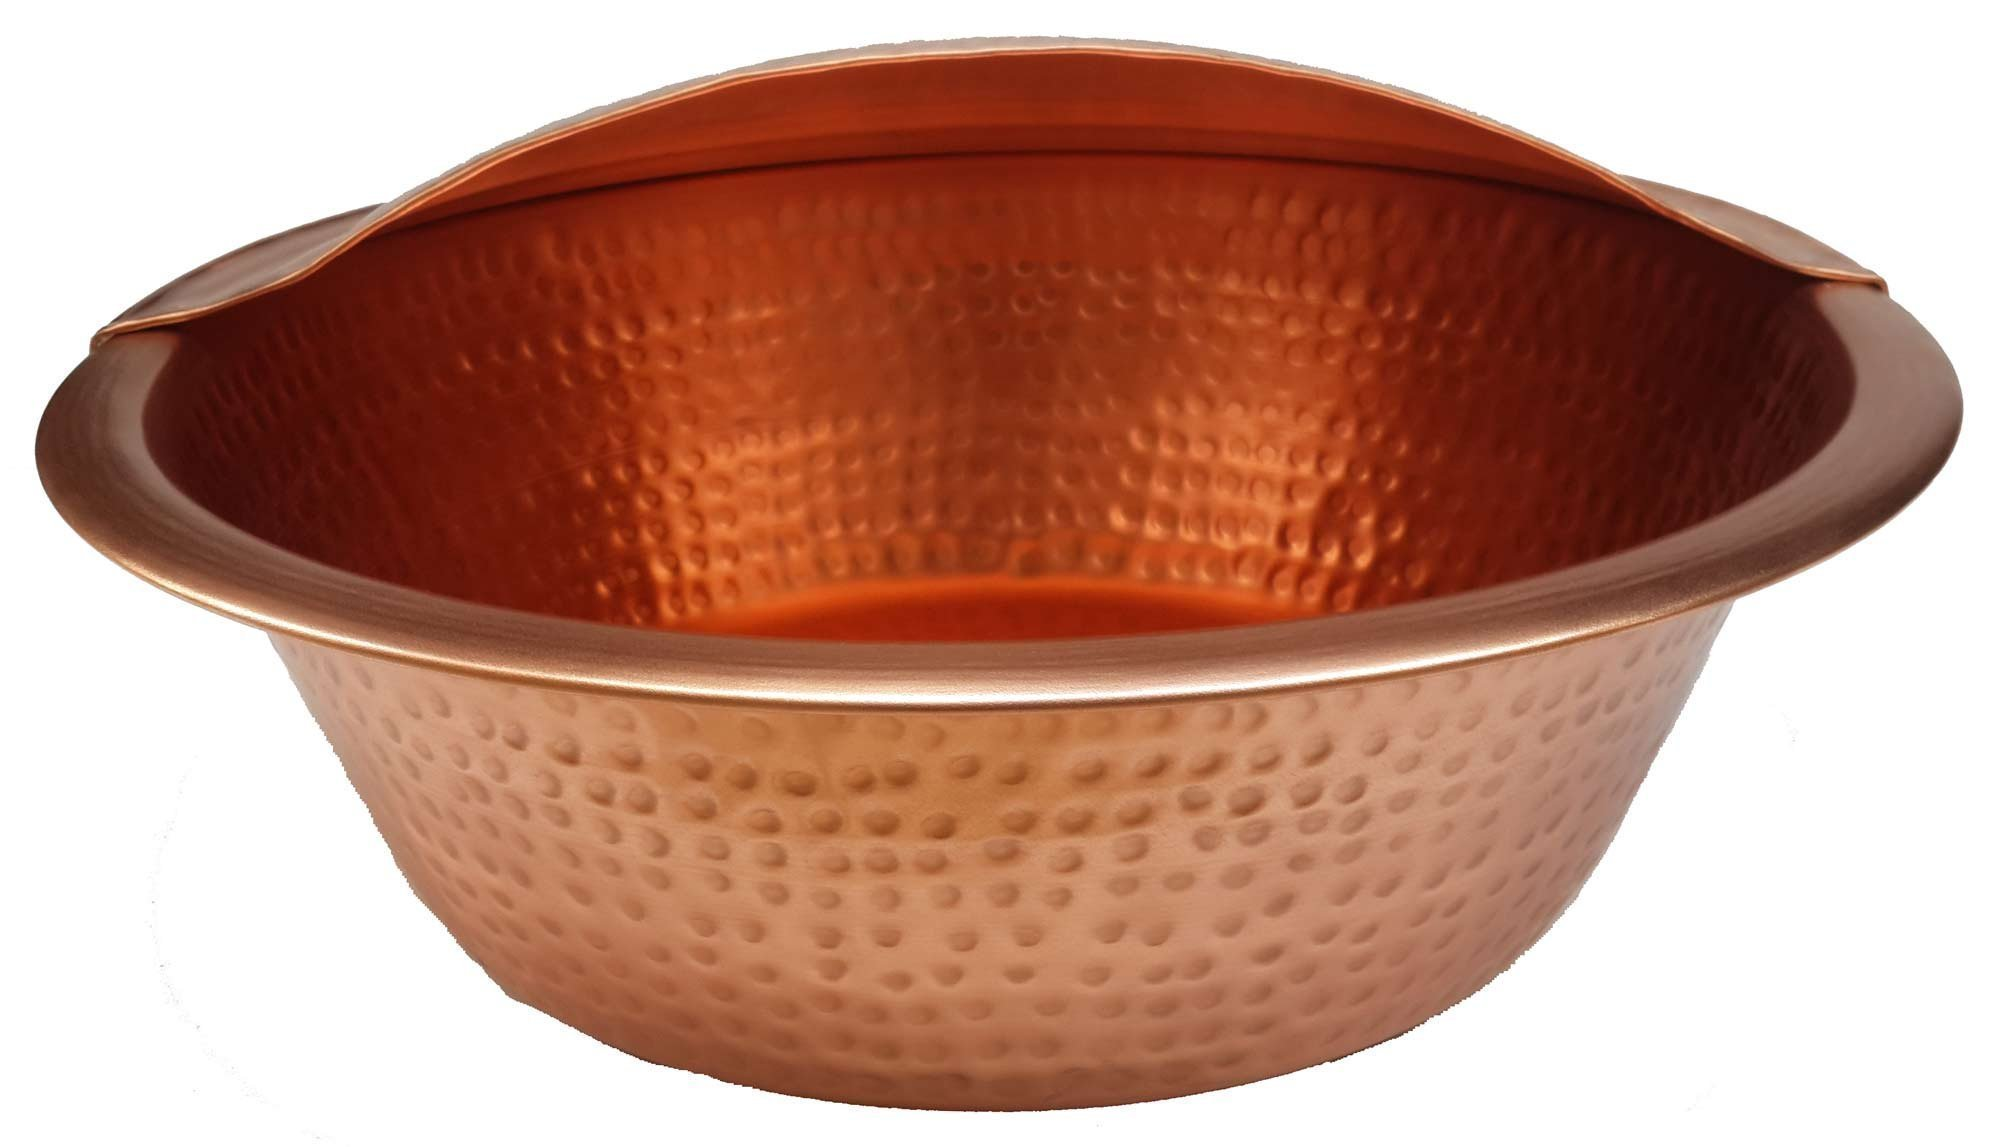 Egypr gift shops Polished Copper Massage Therapy Pedicure Bowl + Foot Rest